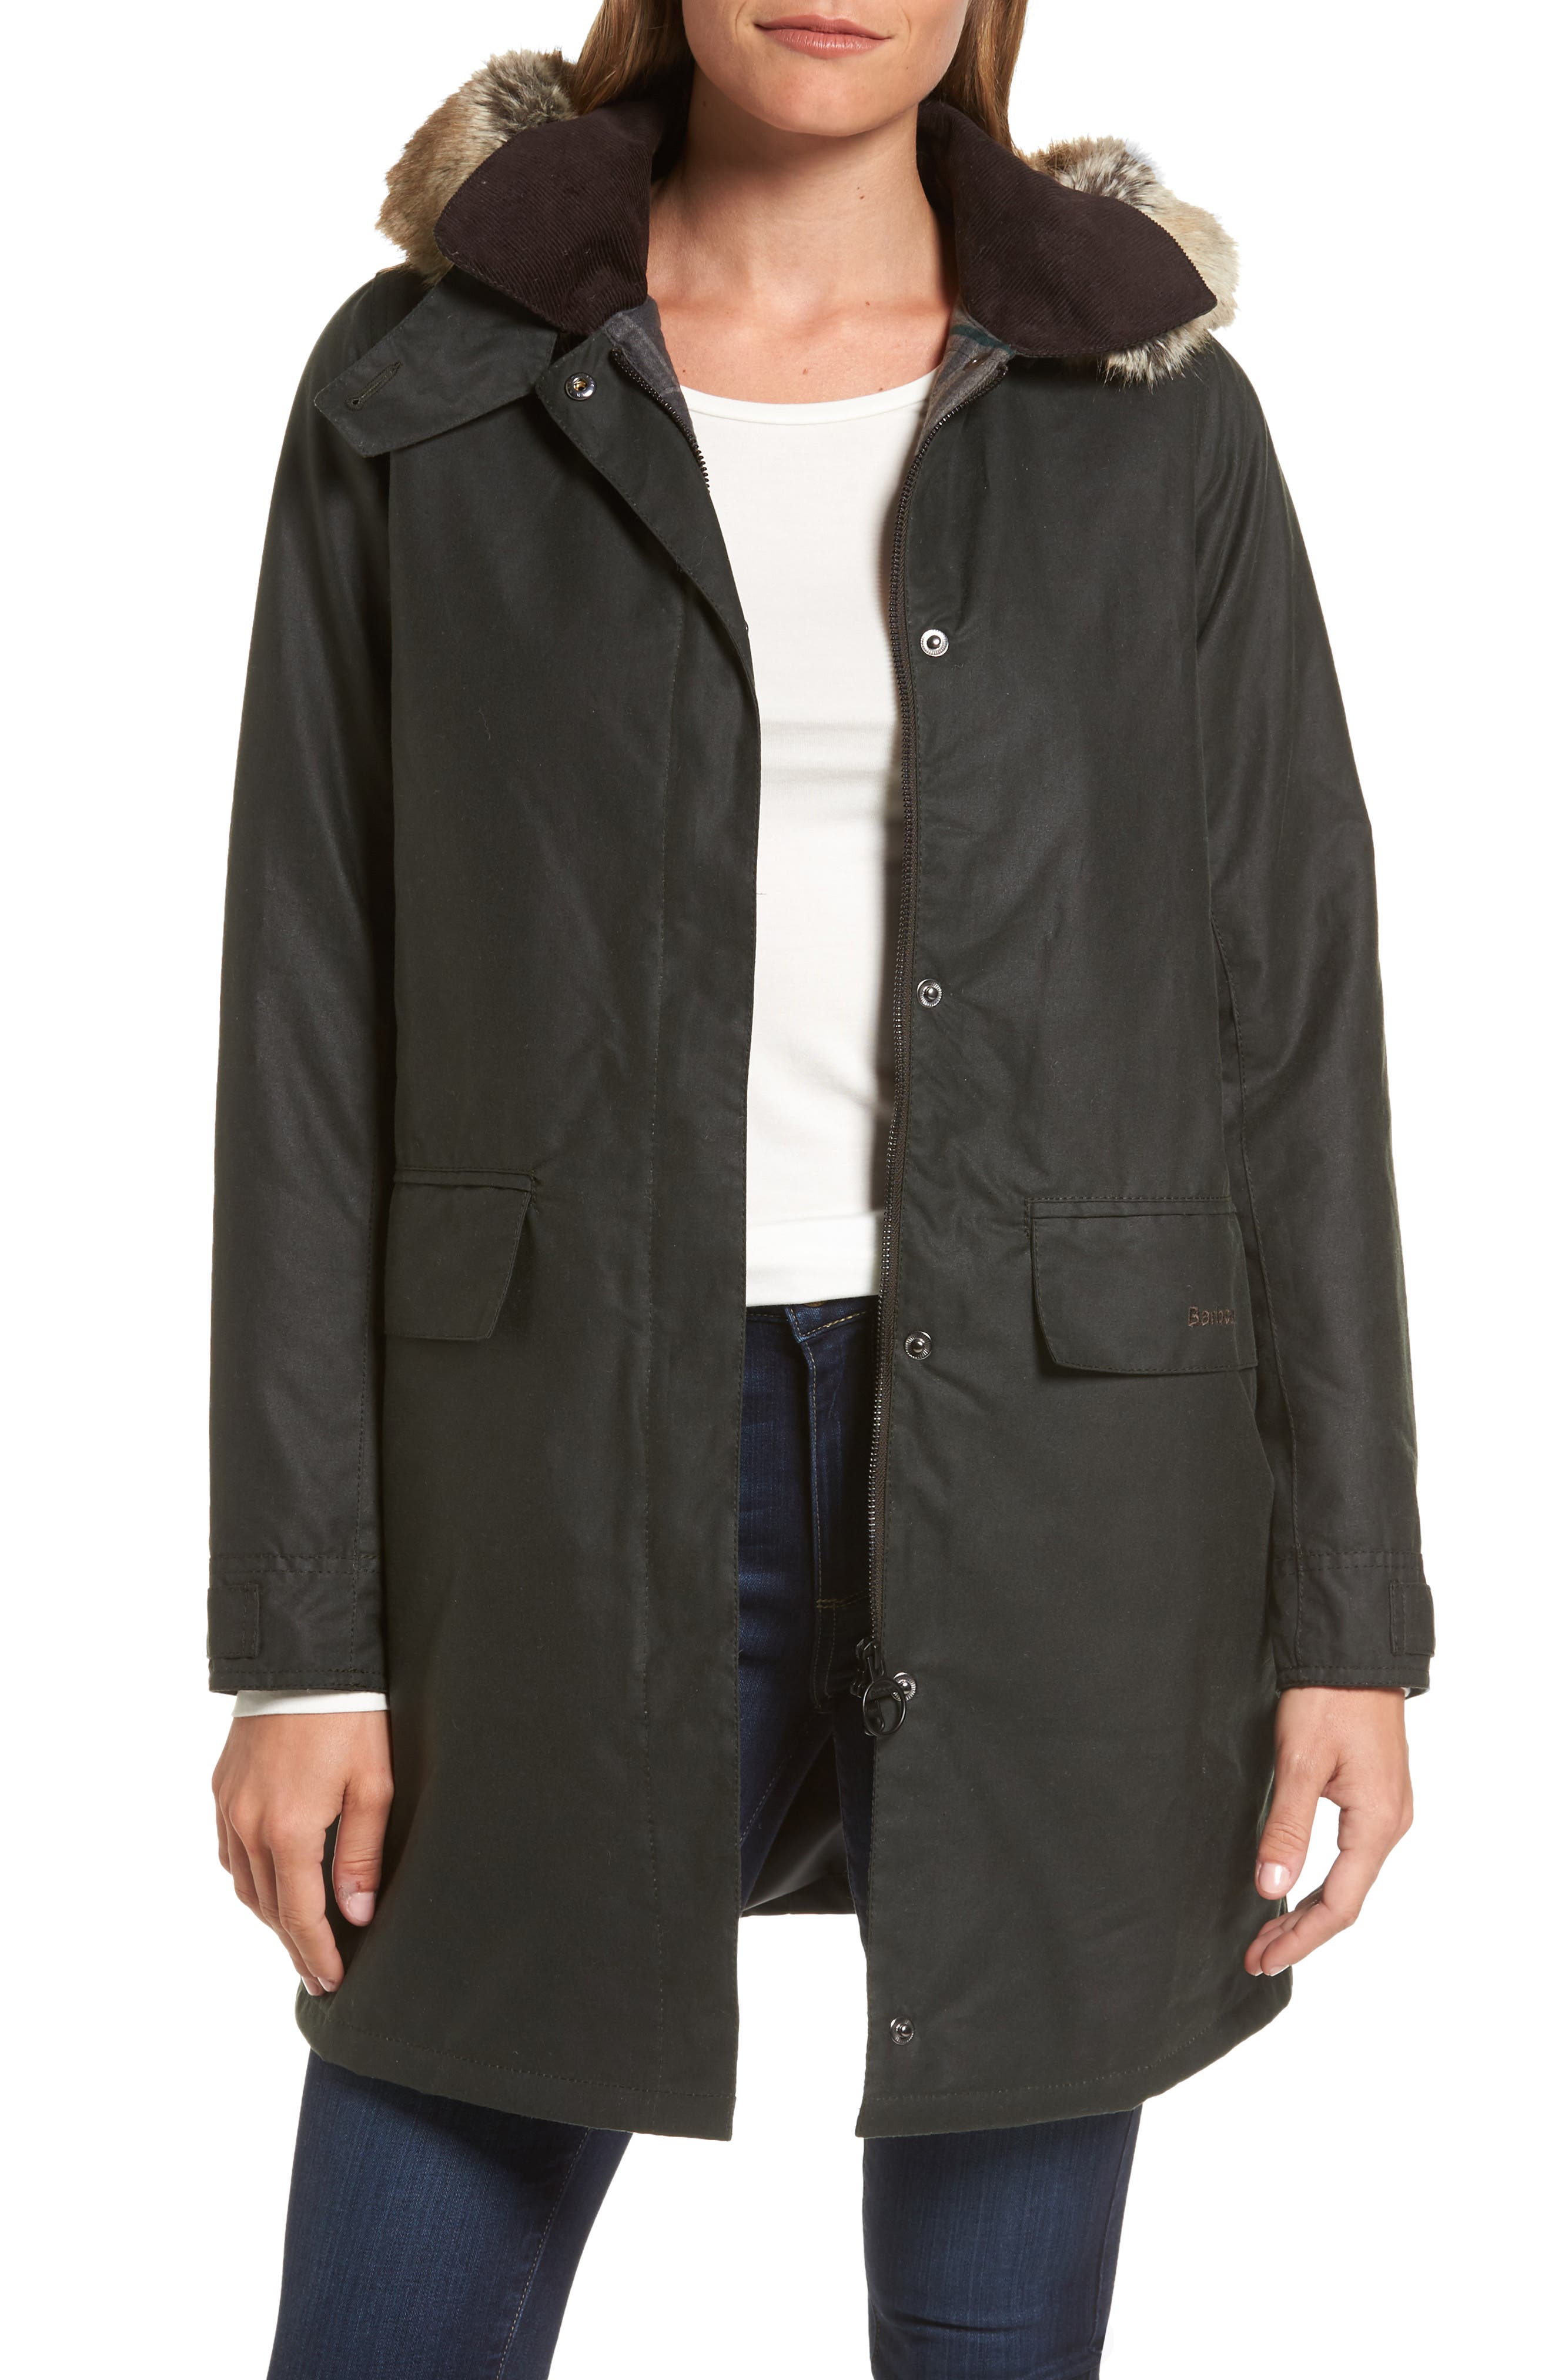 Fortrose Hooded Water Resistant Waxed Canvas Jacket with Faux Fur Trim,                         Main,                         color, 302